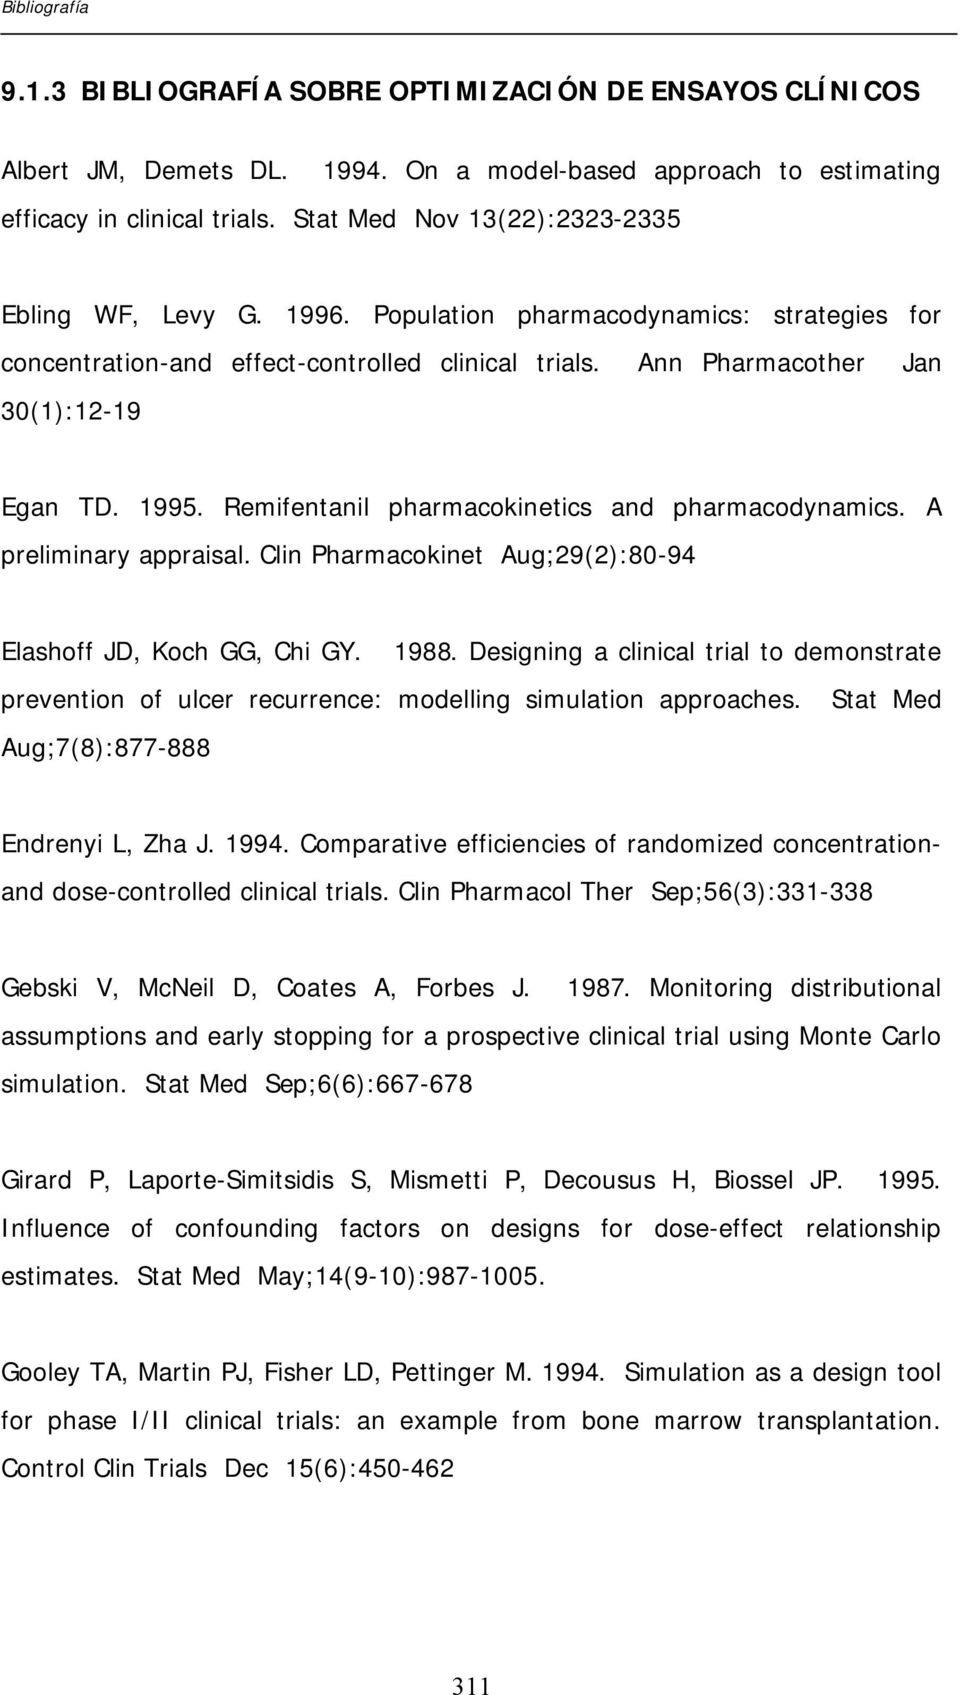 Remifentanil pharmacokinetics and pharmacodynamics. A preliminary appraisal. Clin Pharmacokinet Aug;29(2):80-94 Elashoff JD, Koch GG, Chi GY. 1988.